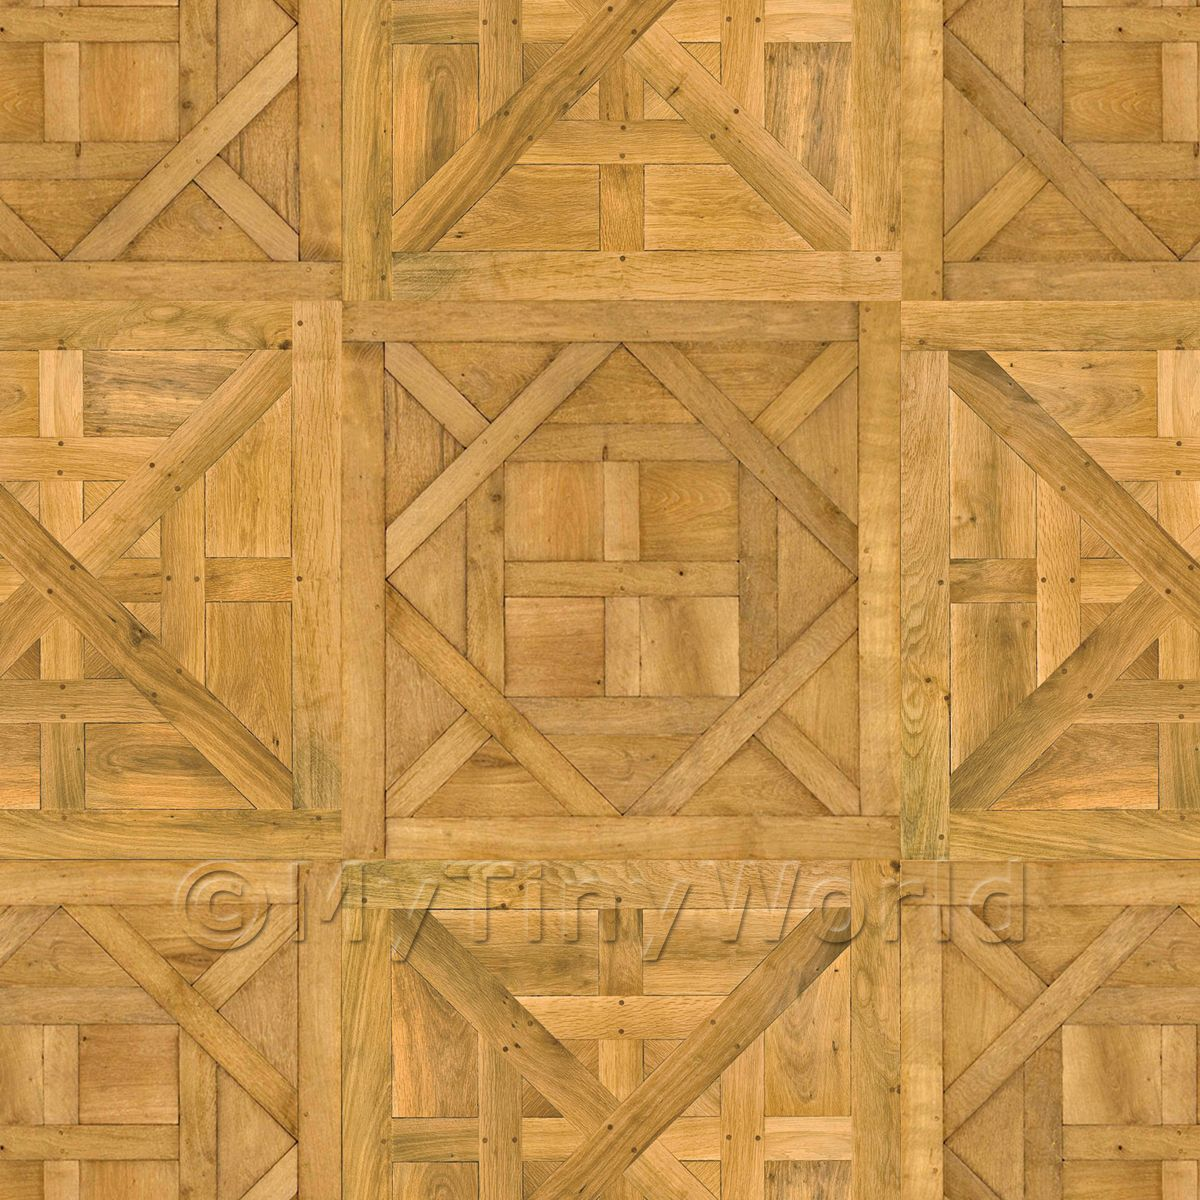 Dolls House Caserta / Aremberg Mixed Panel Parquet Flooring